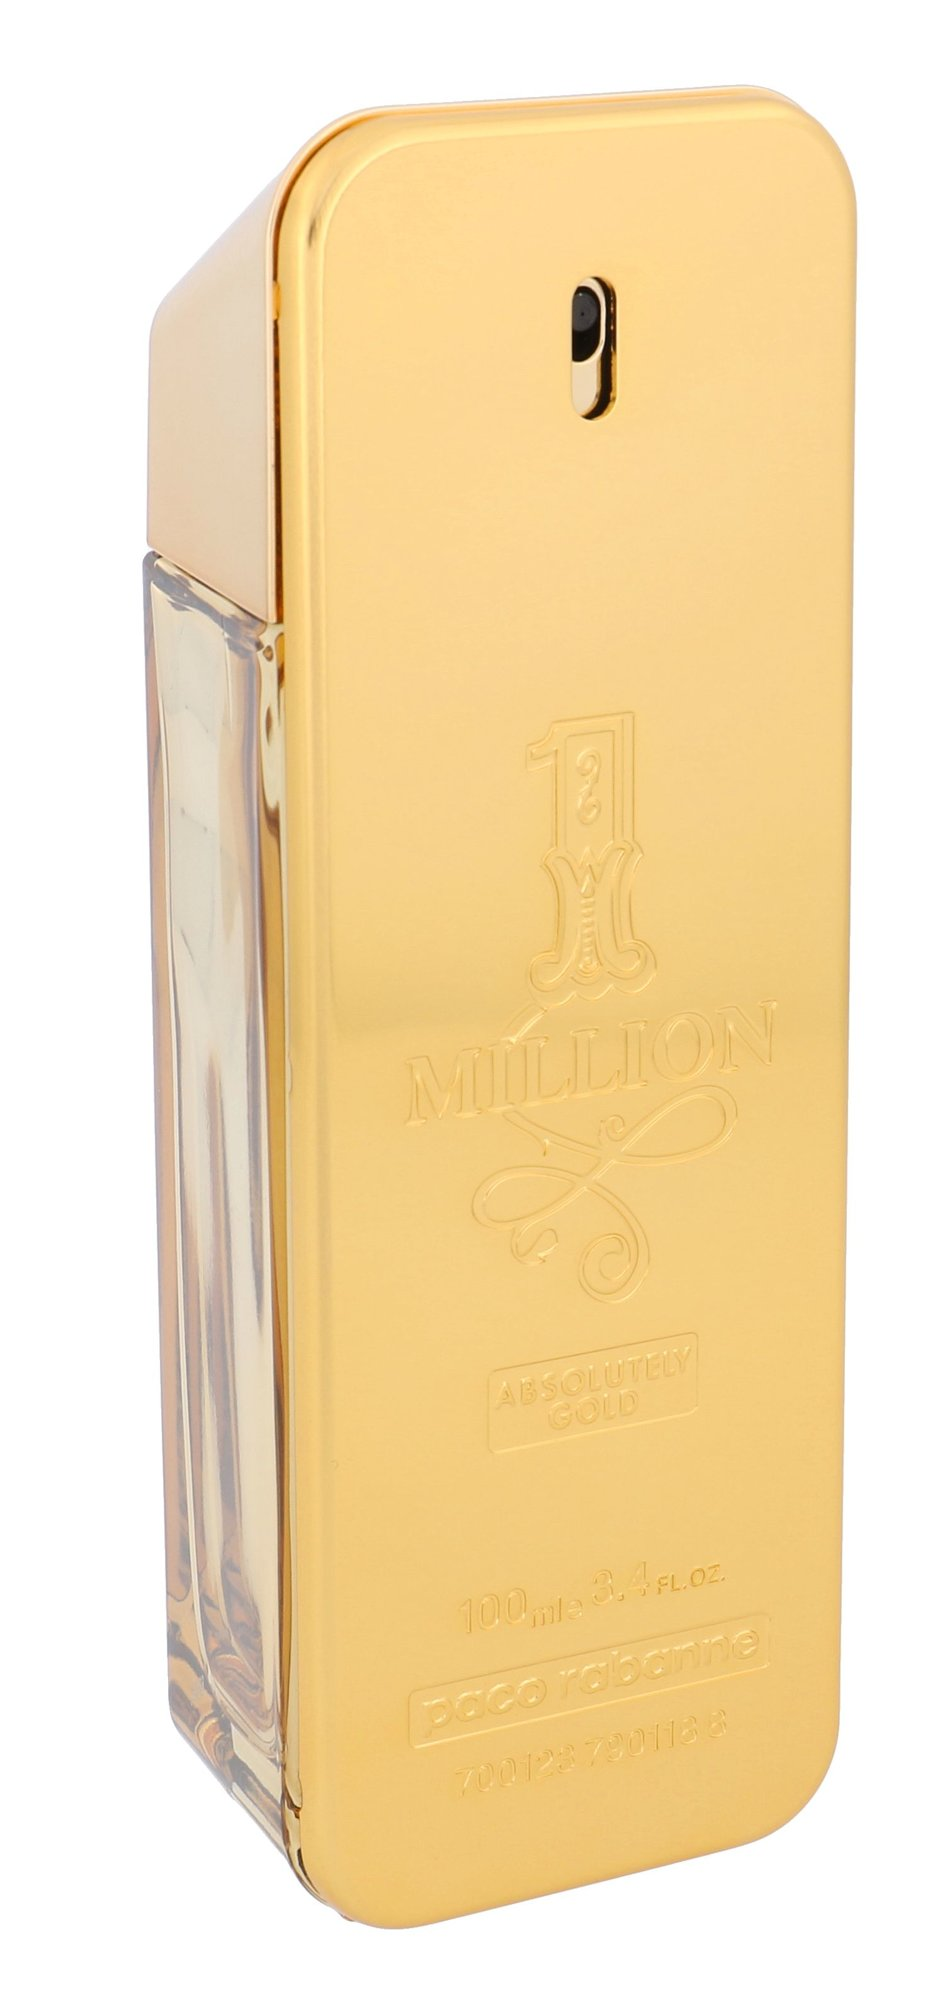 Paco Rabanne 1 Million Absolutely Gold, Parfum 100ml